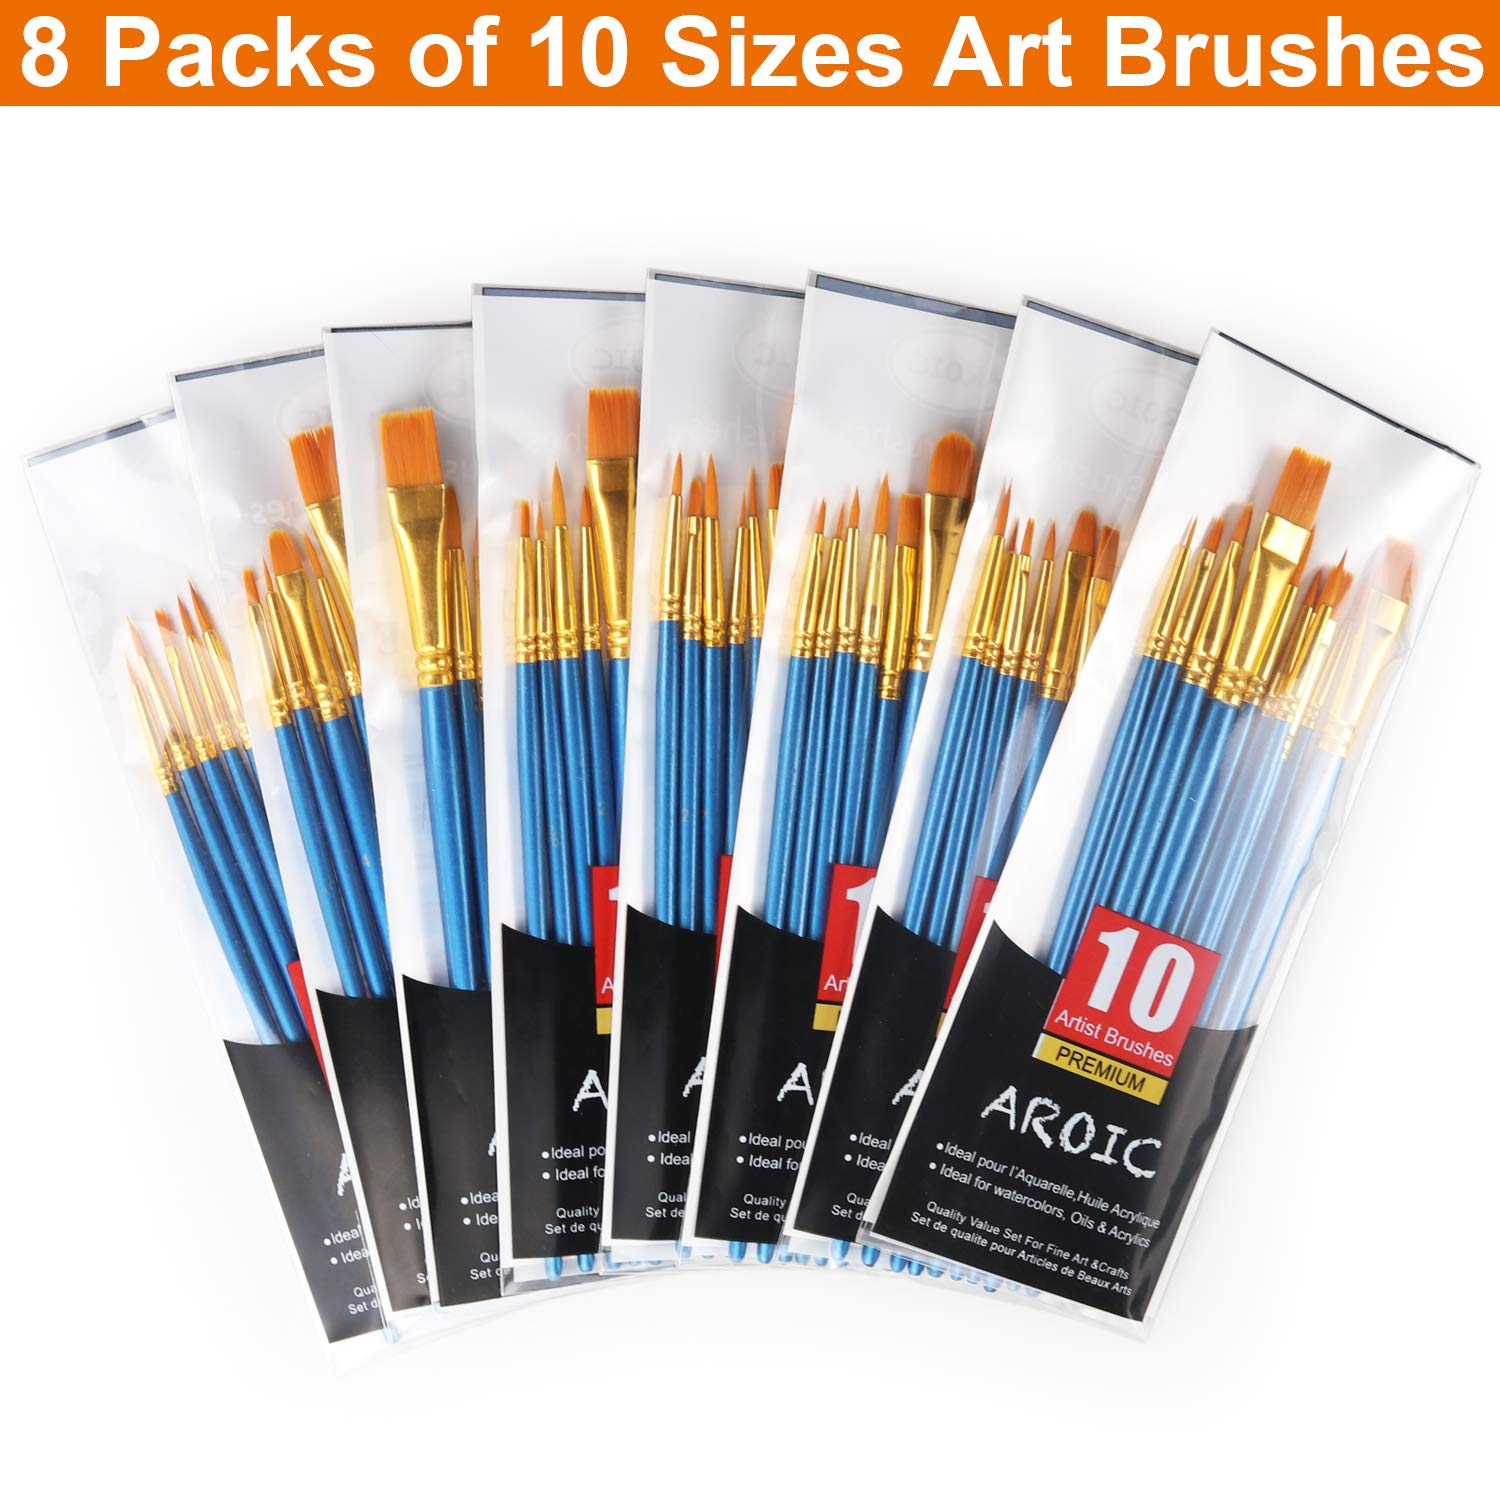 Nylon Hair Brushes for Acrylic Oil Watercolor Painting Artist Professional Painting Kits Paint Brush Set 80 Pack